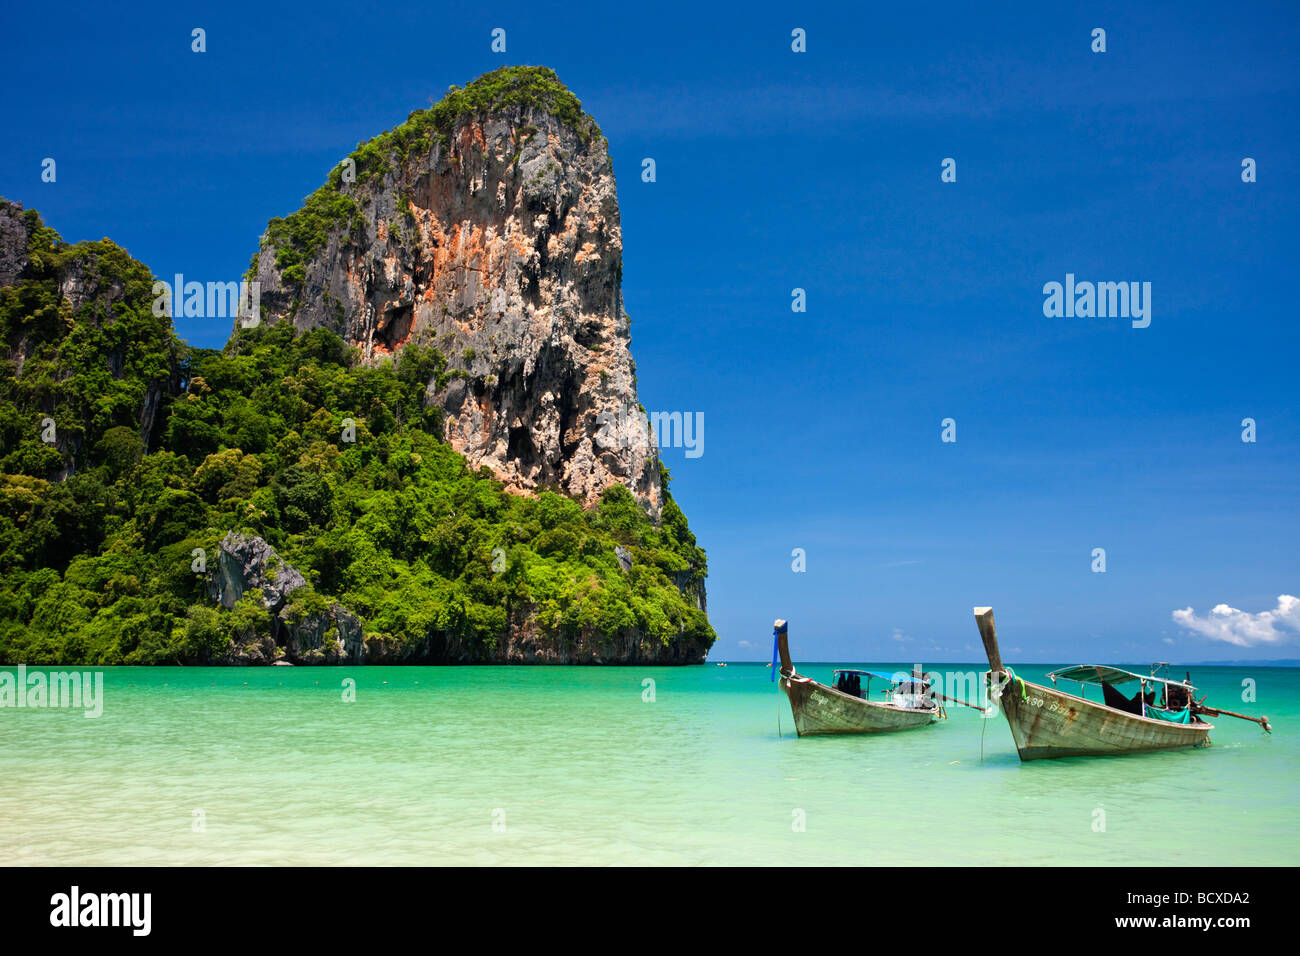 Longtail boats lined up on Railay Beach, Thailand - Stock Image